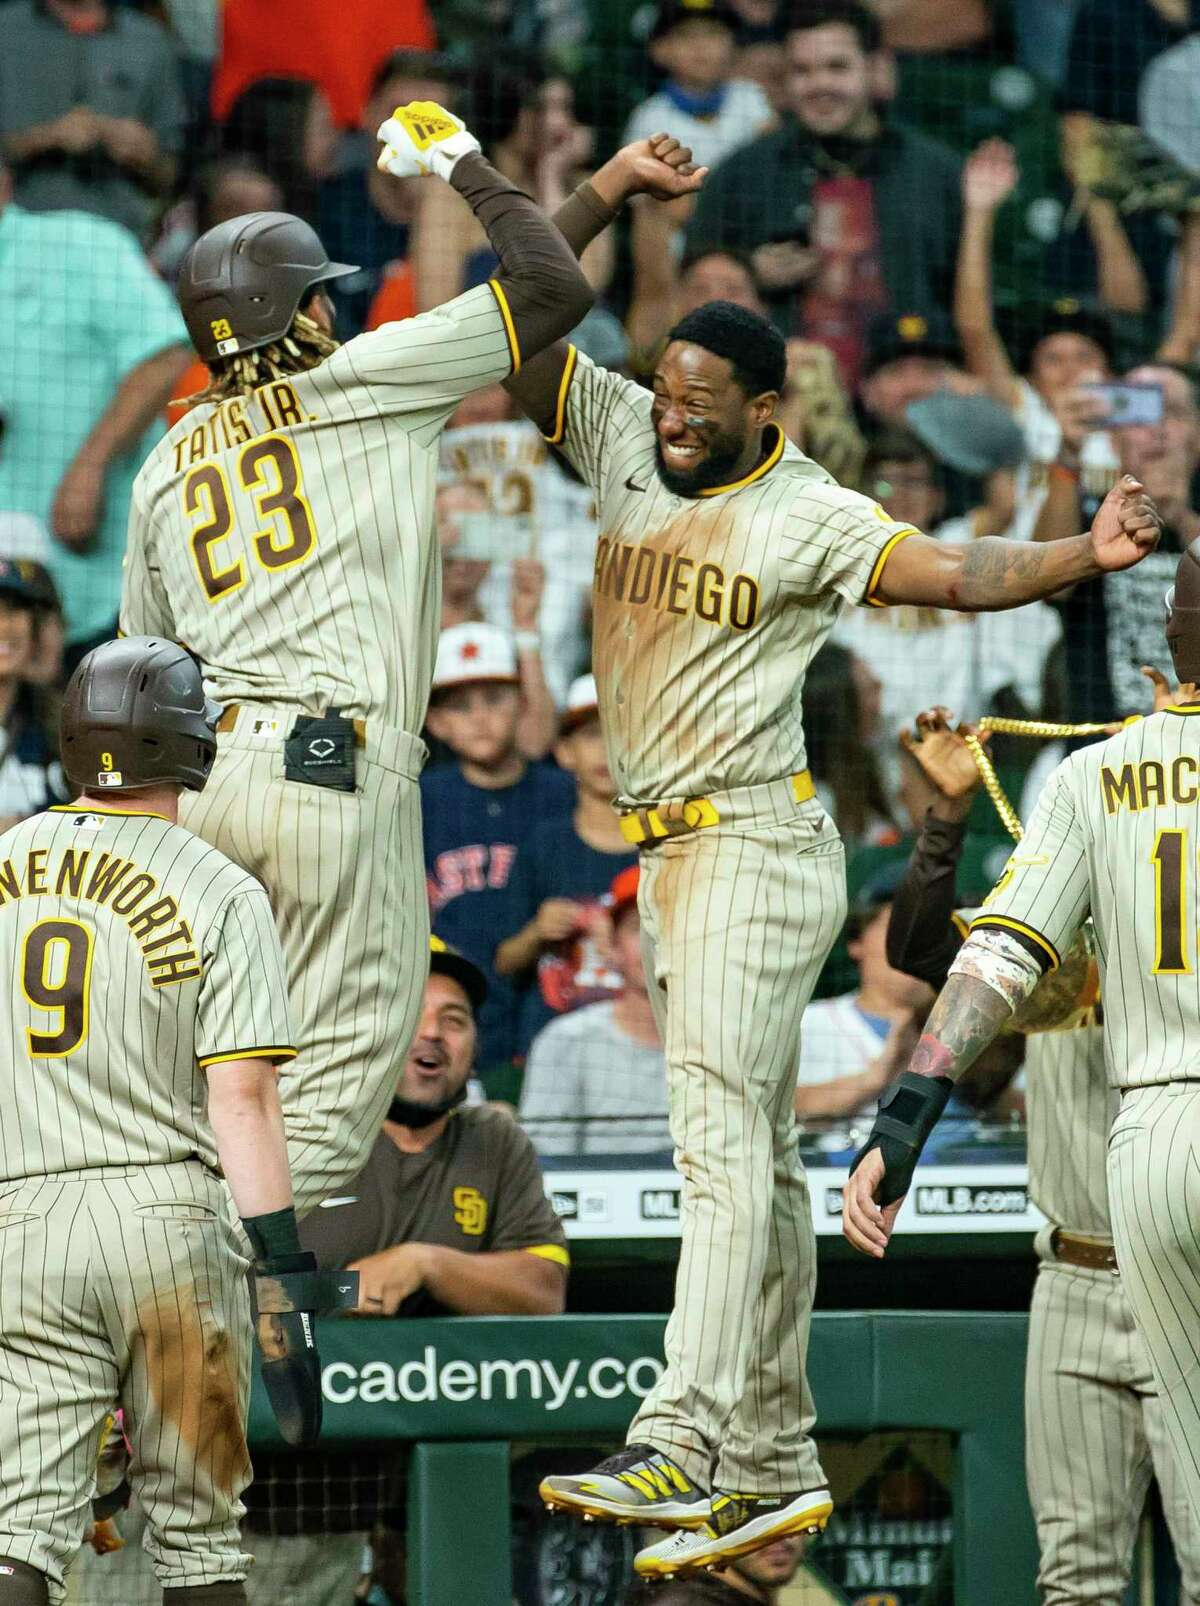 Padres shortstop Fernando Tatís Jr. (23) celebrates hitting a three-run home run in the ninth inning to tie the game 6-6. For the second day in a row, the Astros lost in extra innings.